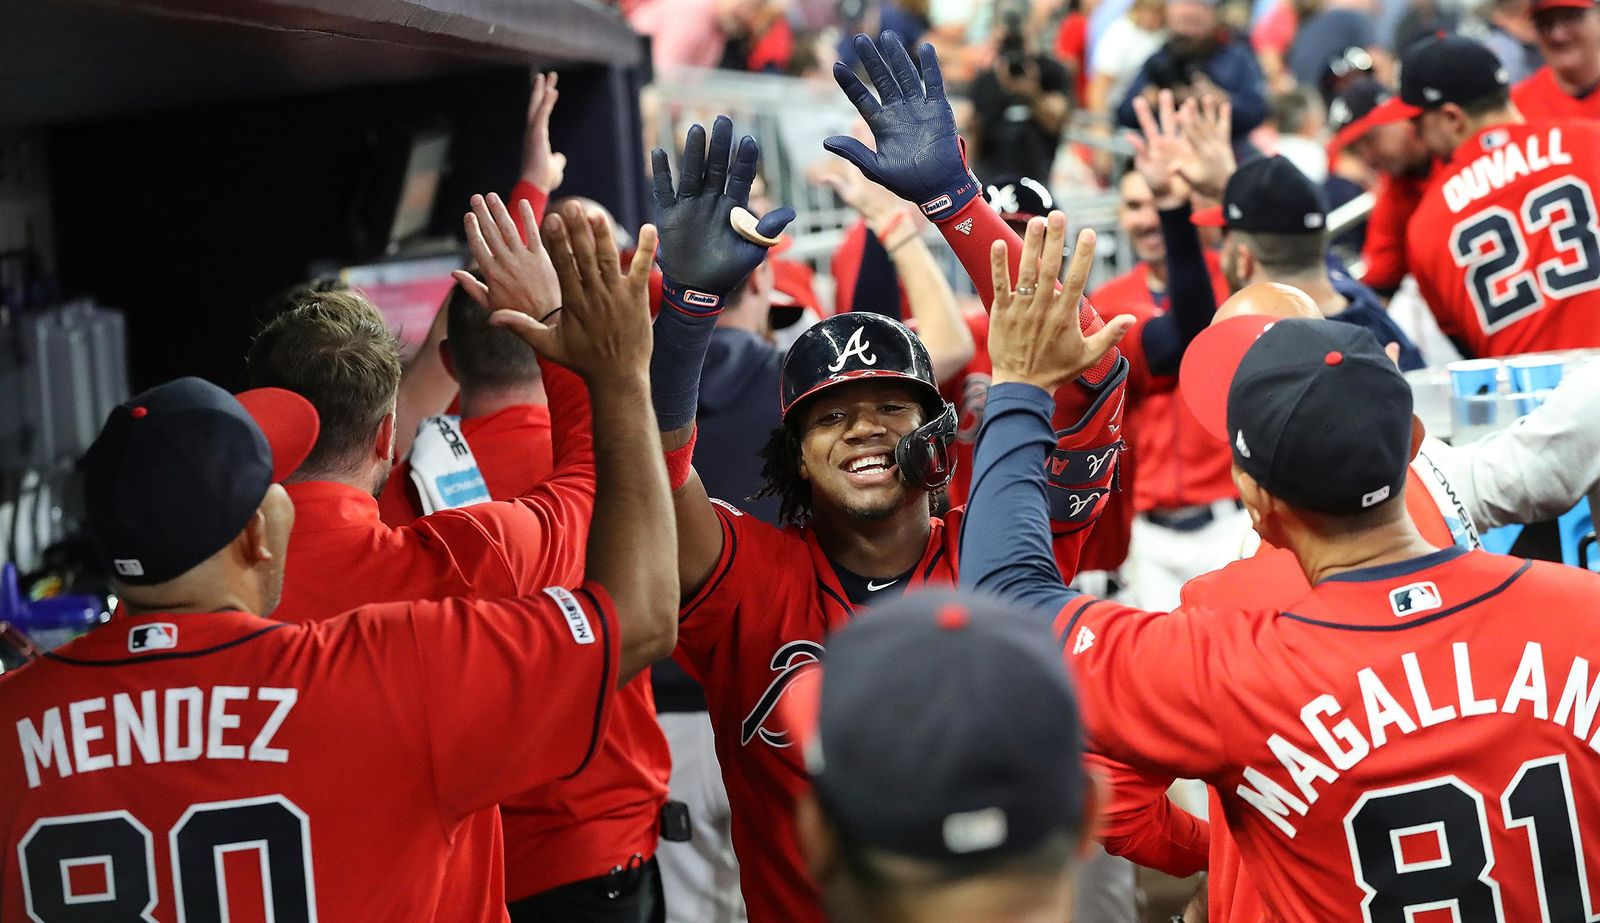 Atlanta Braves' Ronald Acuna Jr., center, reacts after hitting a two-RBI home run against the San Francisco Giants during the fifth inning of a baseball game on Friday, Sept. 20, 2019, in Atlanta. (Curtis Compton/Atlanta Journal-Constitution via AP)